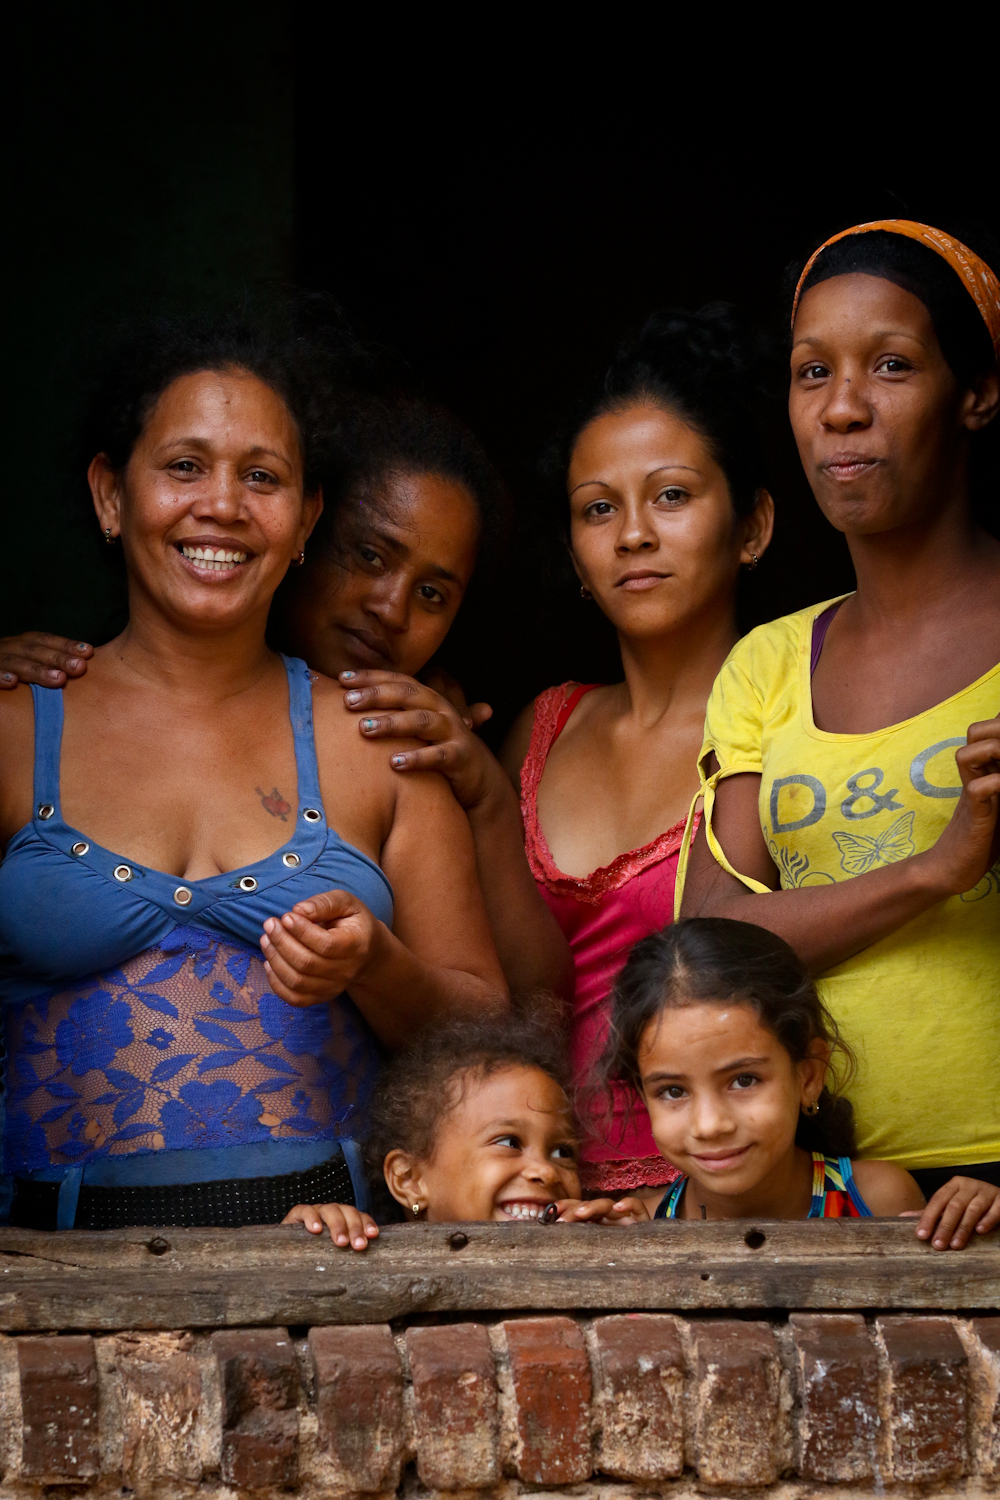 This might be my favorite people shot of the trip. In the small town of Brasil in the rural countryside, life is pretty tough. I was stopped on the street by some guys wanting me to take their photo, and when I was done I saw all these gals watching from the window of their shabby building. Look at their faces! In can see Joy in one, Shyness in the next, Confidence on another, and Uncertainty in the last.